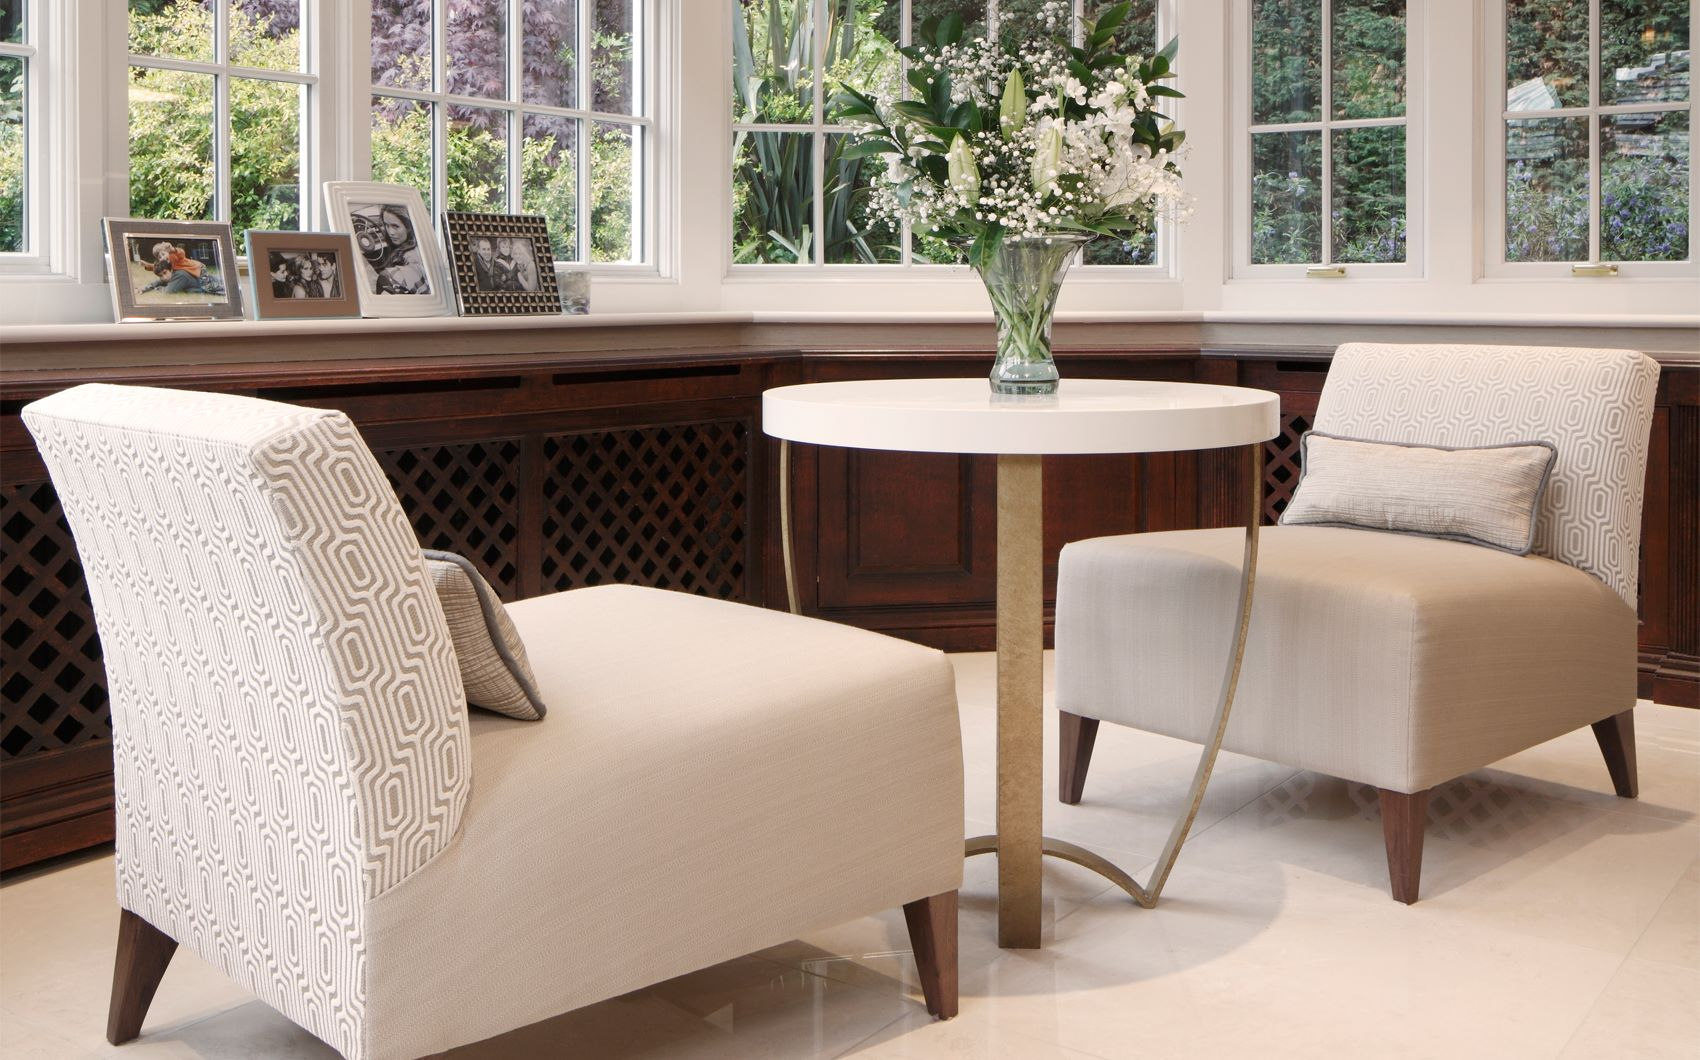 st georges hill - luxury nook